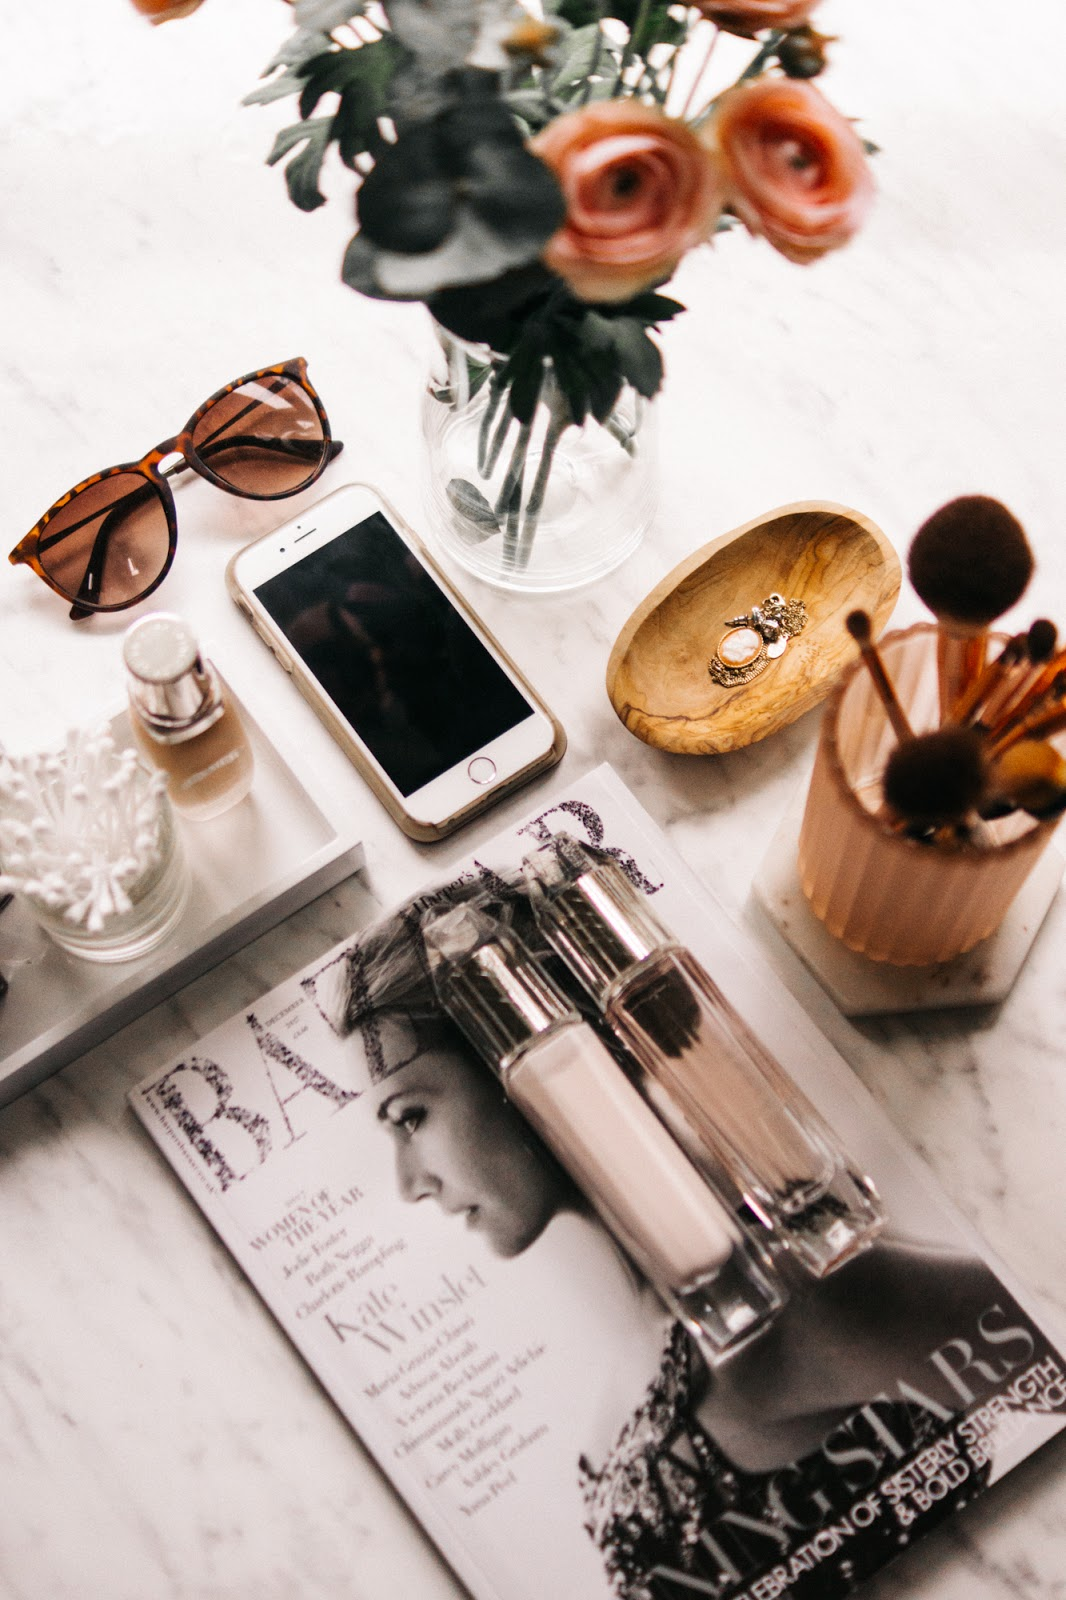 Lifestyle flatlay blog photography - Barely There Beauty